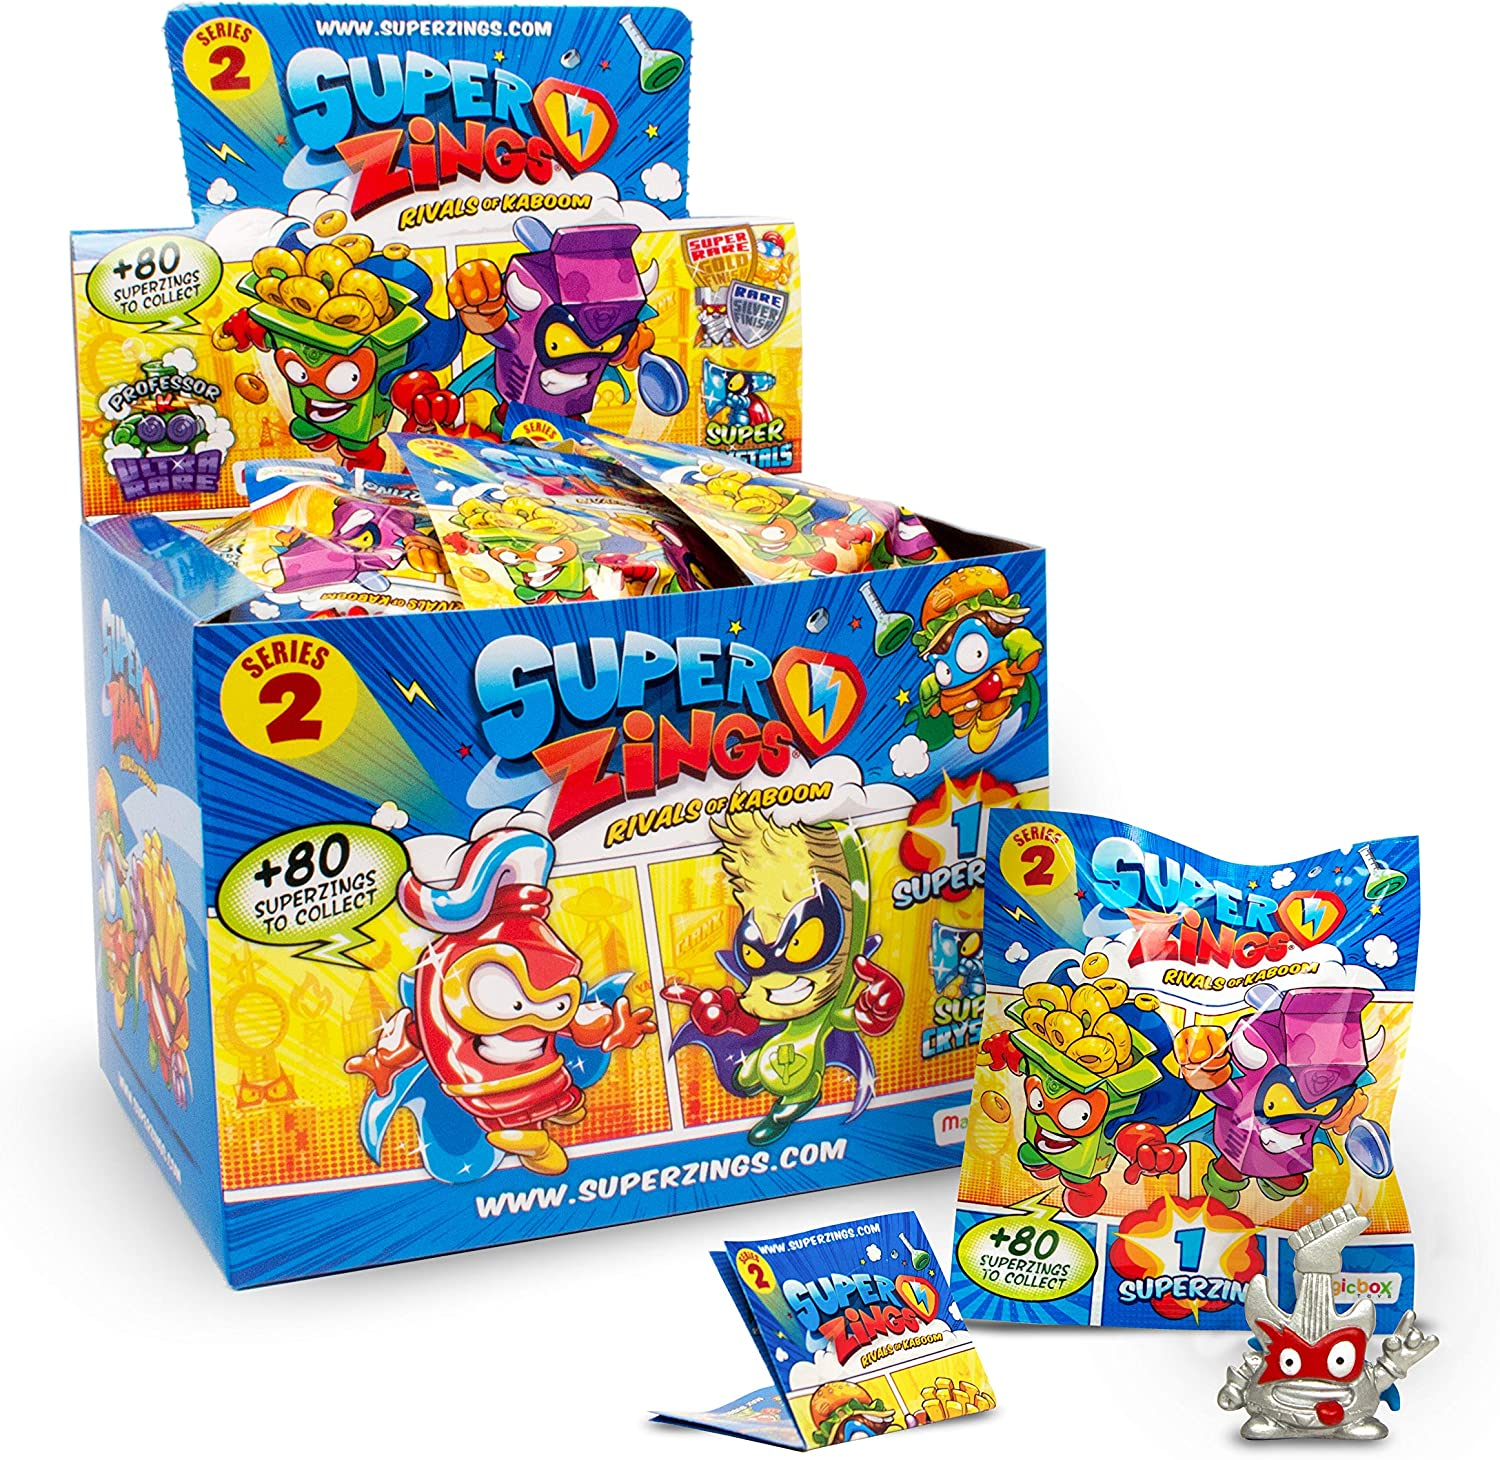 Súperzings- Onepack Serie 2 Caja con 50 Figuras, Multicolor (Magic Box INT. Toys MBXPSZ2D850IN00): Amazon.es: Juguetes y juegos